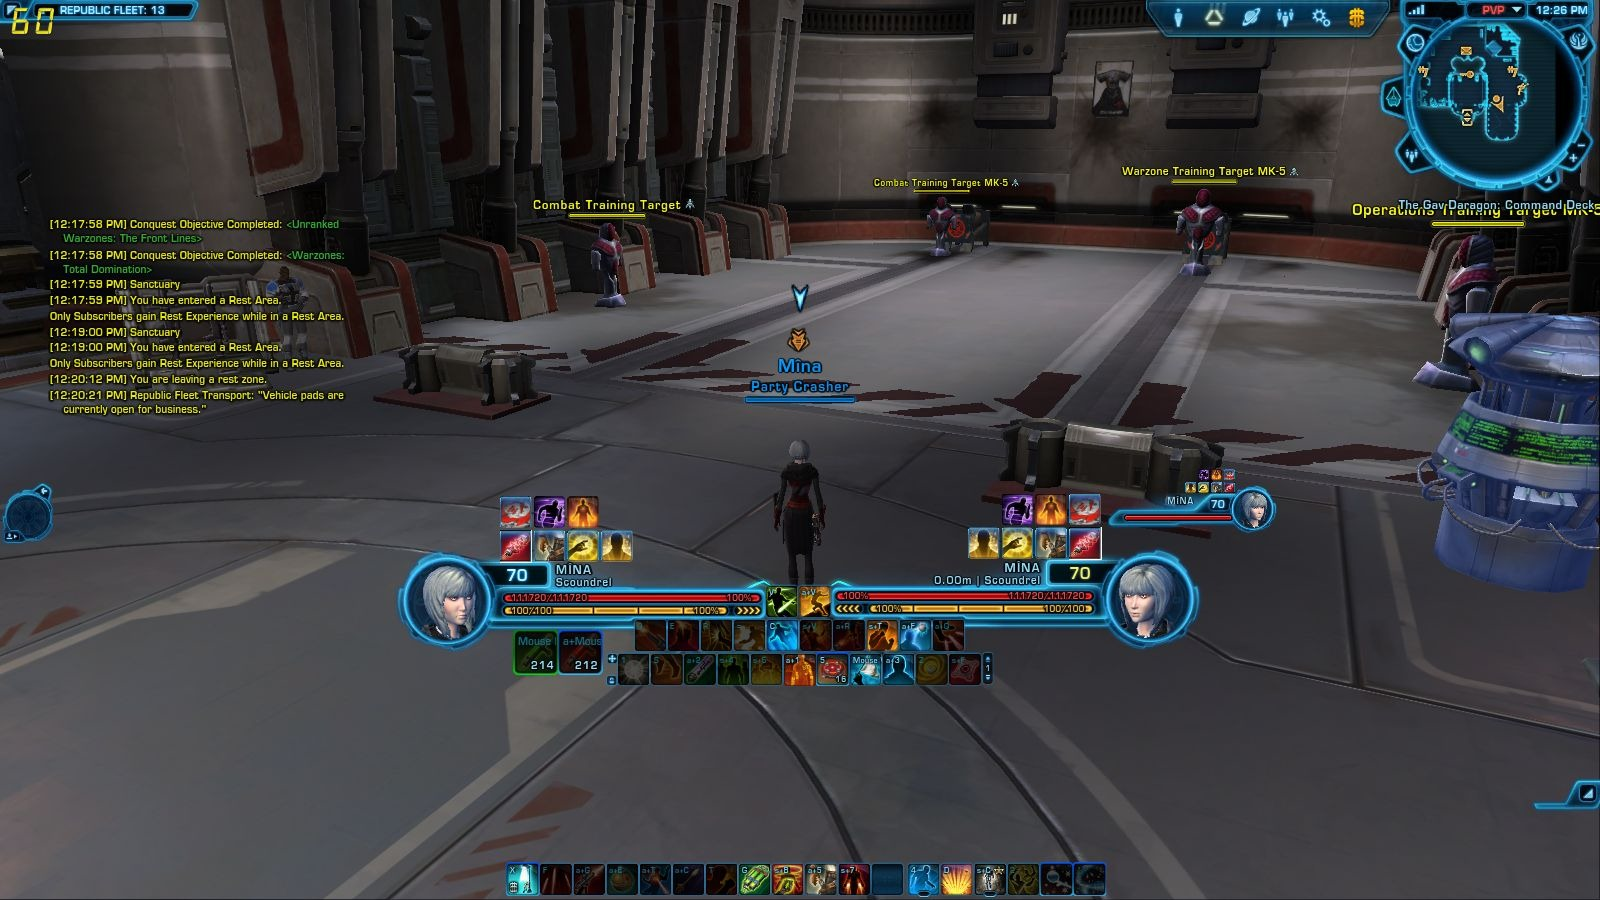 SWTOR 5 0 Scrapper Scoundrel PvP Guide by Saya - Dulfy